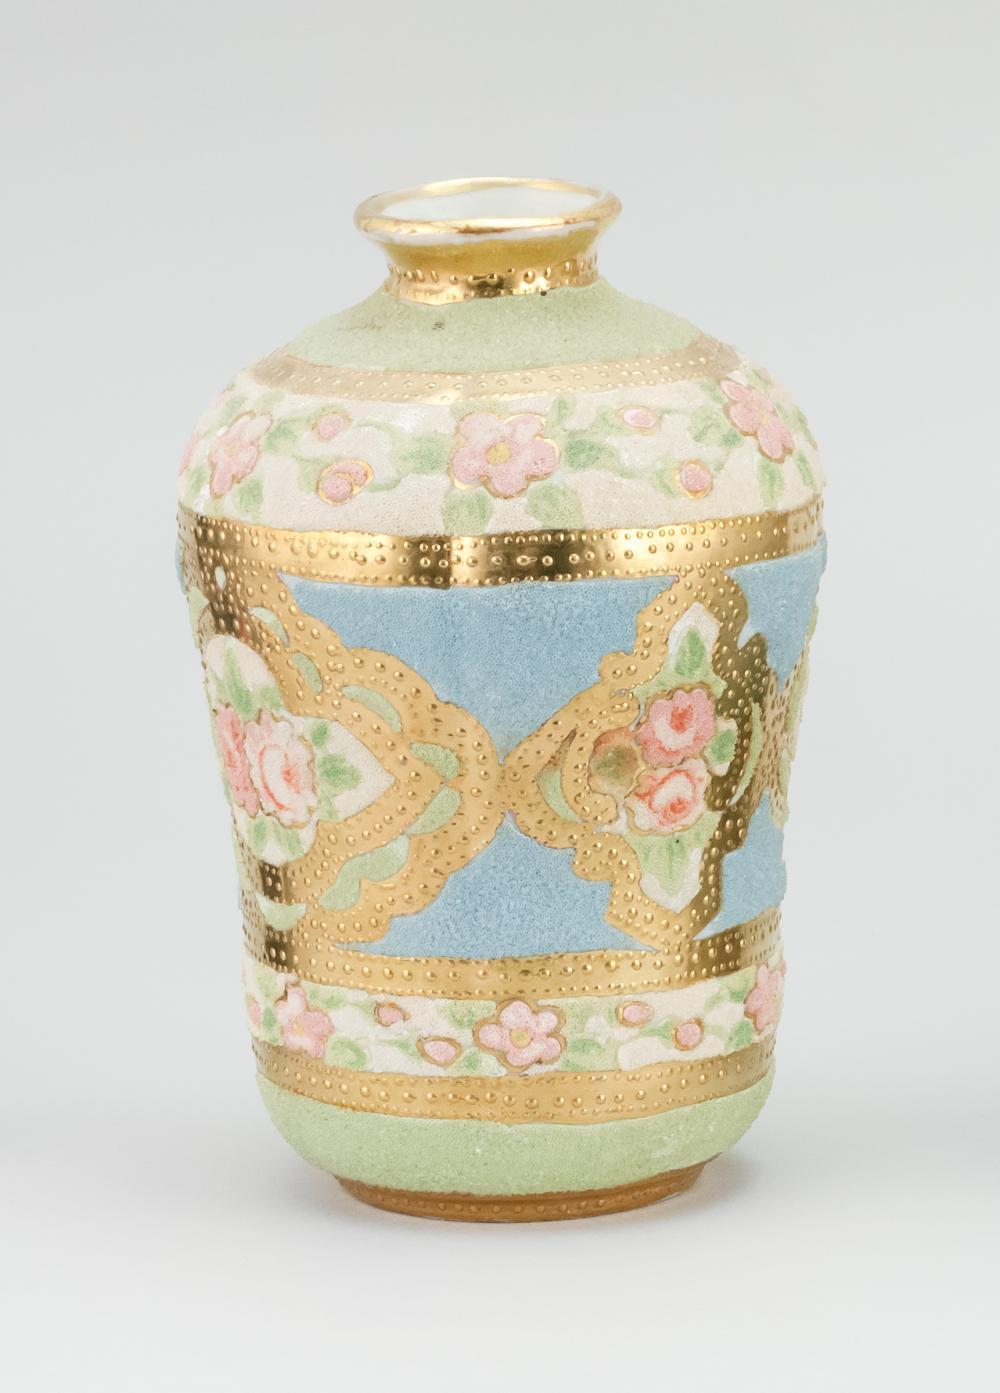 CORALINE NIPPON PORCELAIN VASE With rose decoration. Patent mark on base. Height 6.5